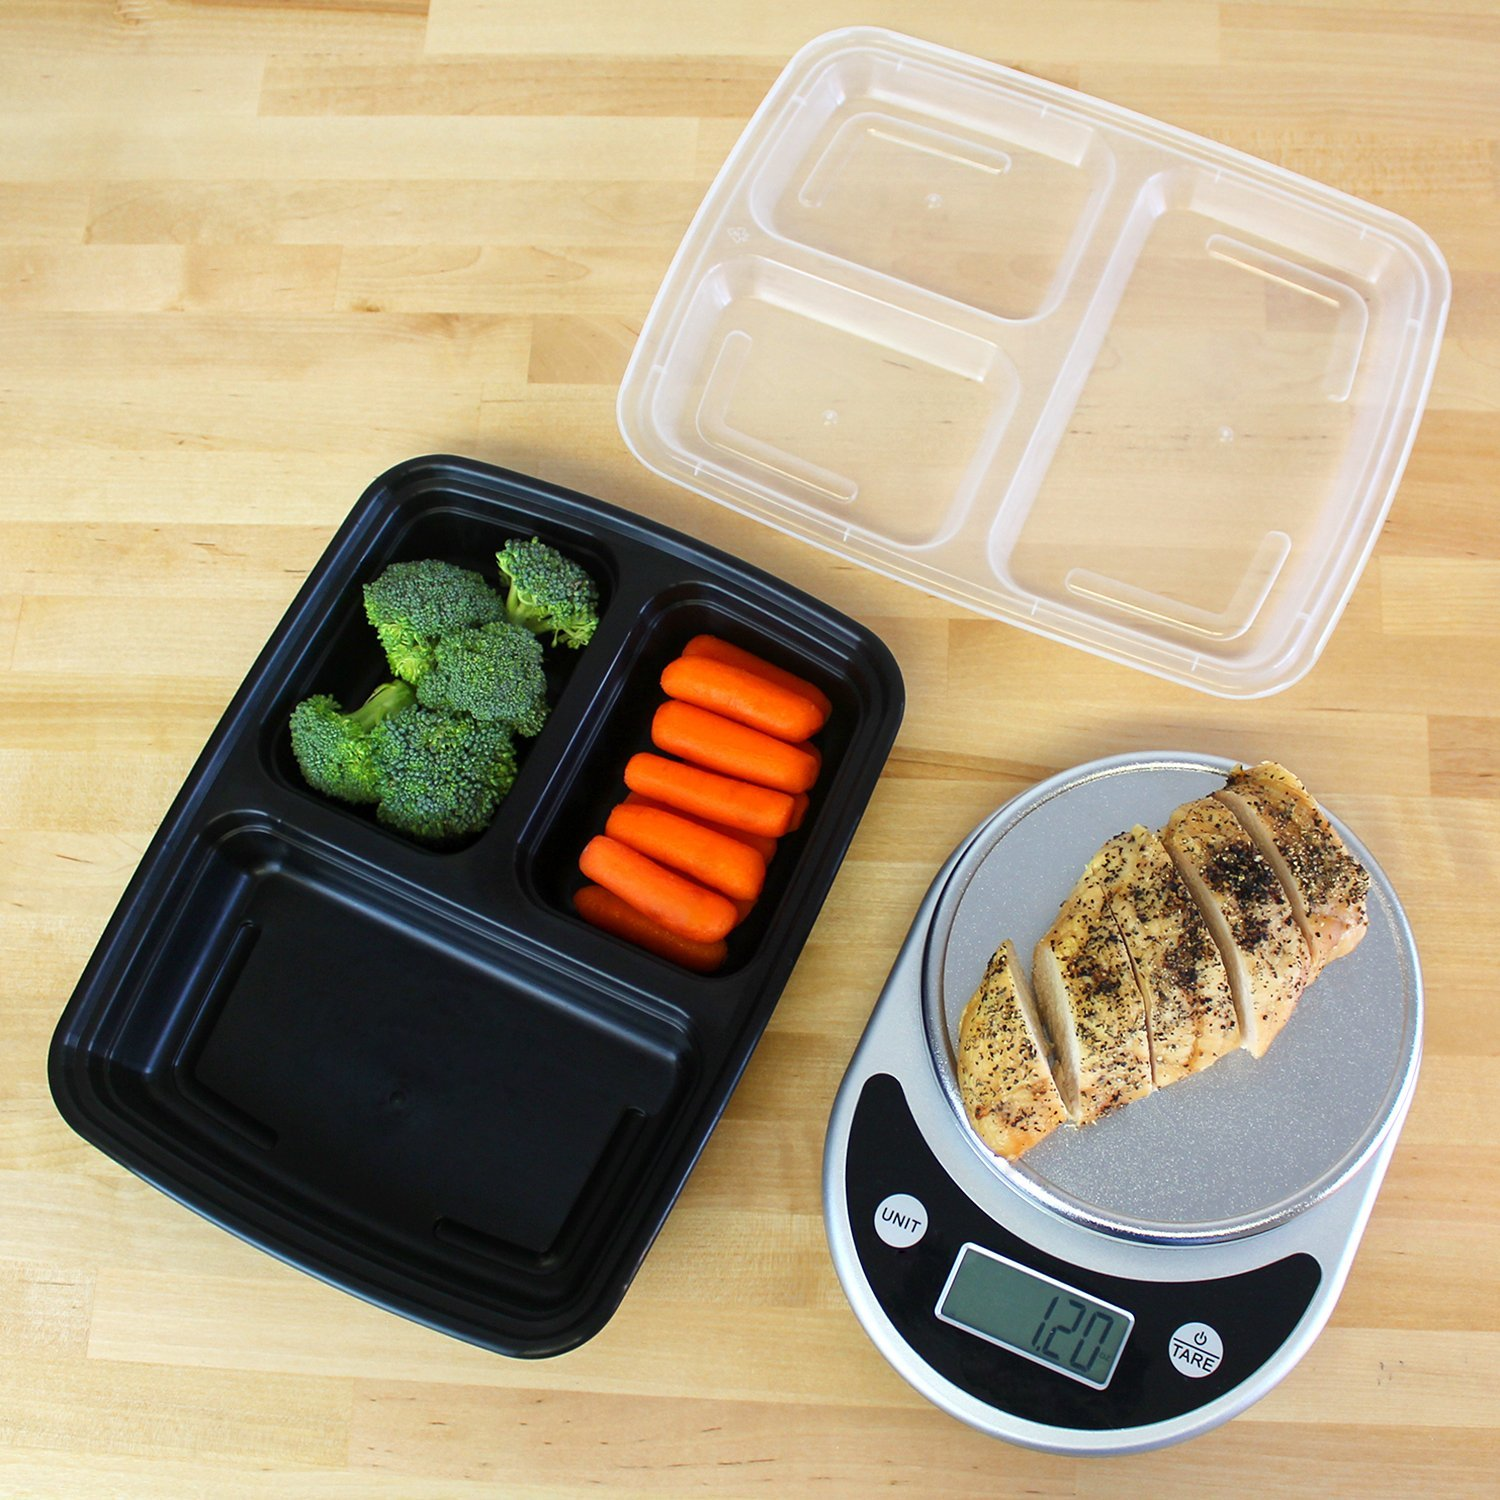 Freshware Meal Prep Containers [15 Pack] 3 Compartment with Lids, Food Containers, Lunch Box | BPA Free | Stackable | Bento Box, Microwave/Dishwasher/Freezer Safe, Portion Control, 21 day fix (32 oz) by Freshware (Image #4)